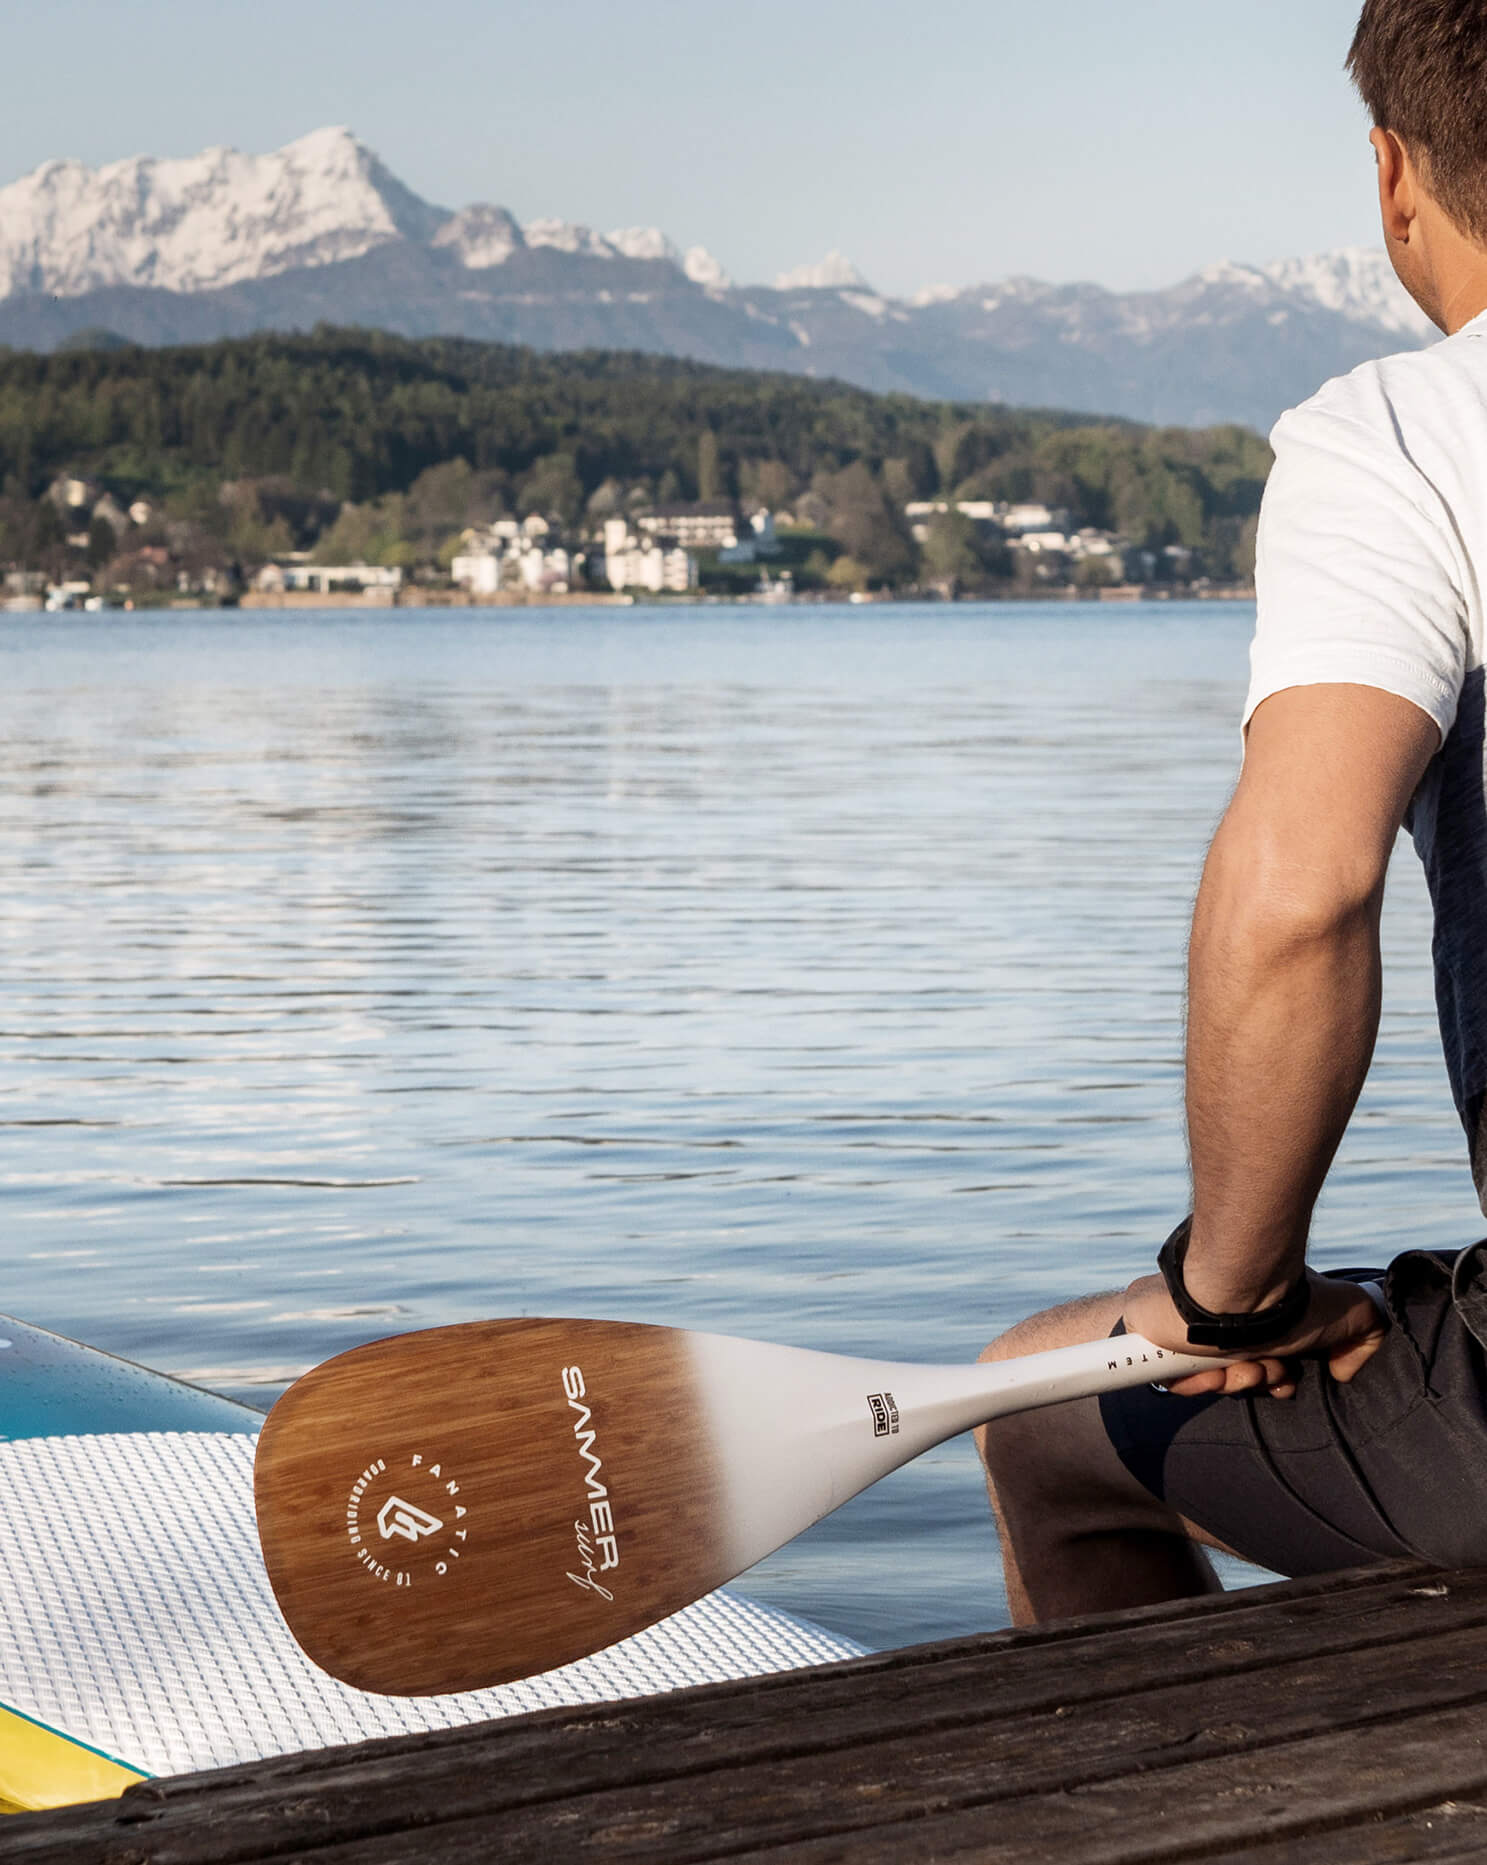 sammersurf, Paddel, Branding, SUP, surfen, Wörthersee, Chris Sammer, Corporate Design